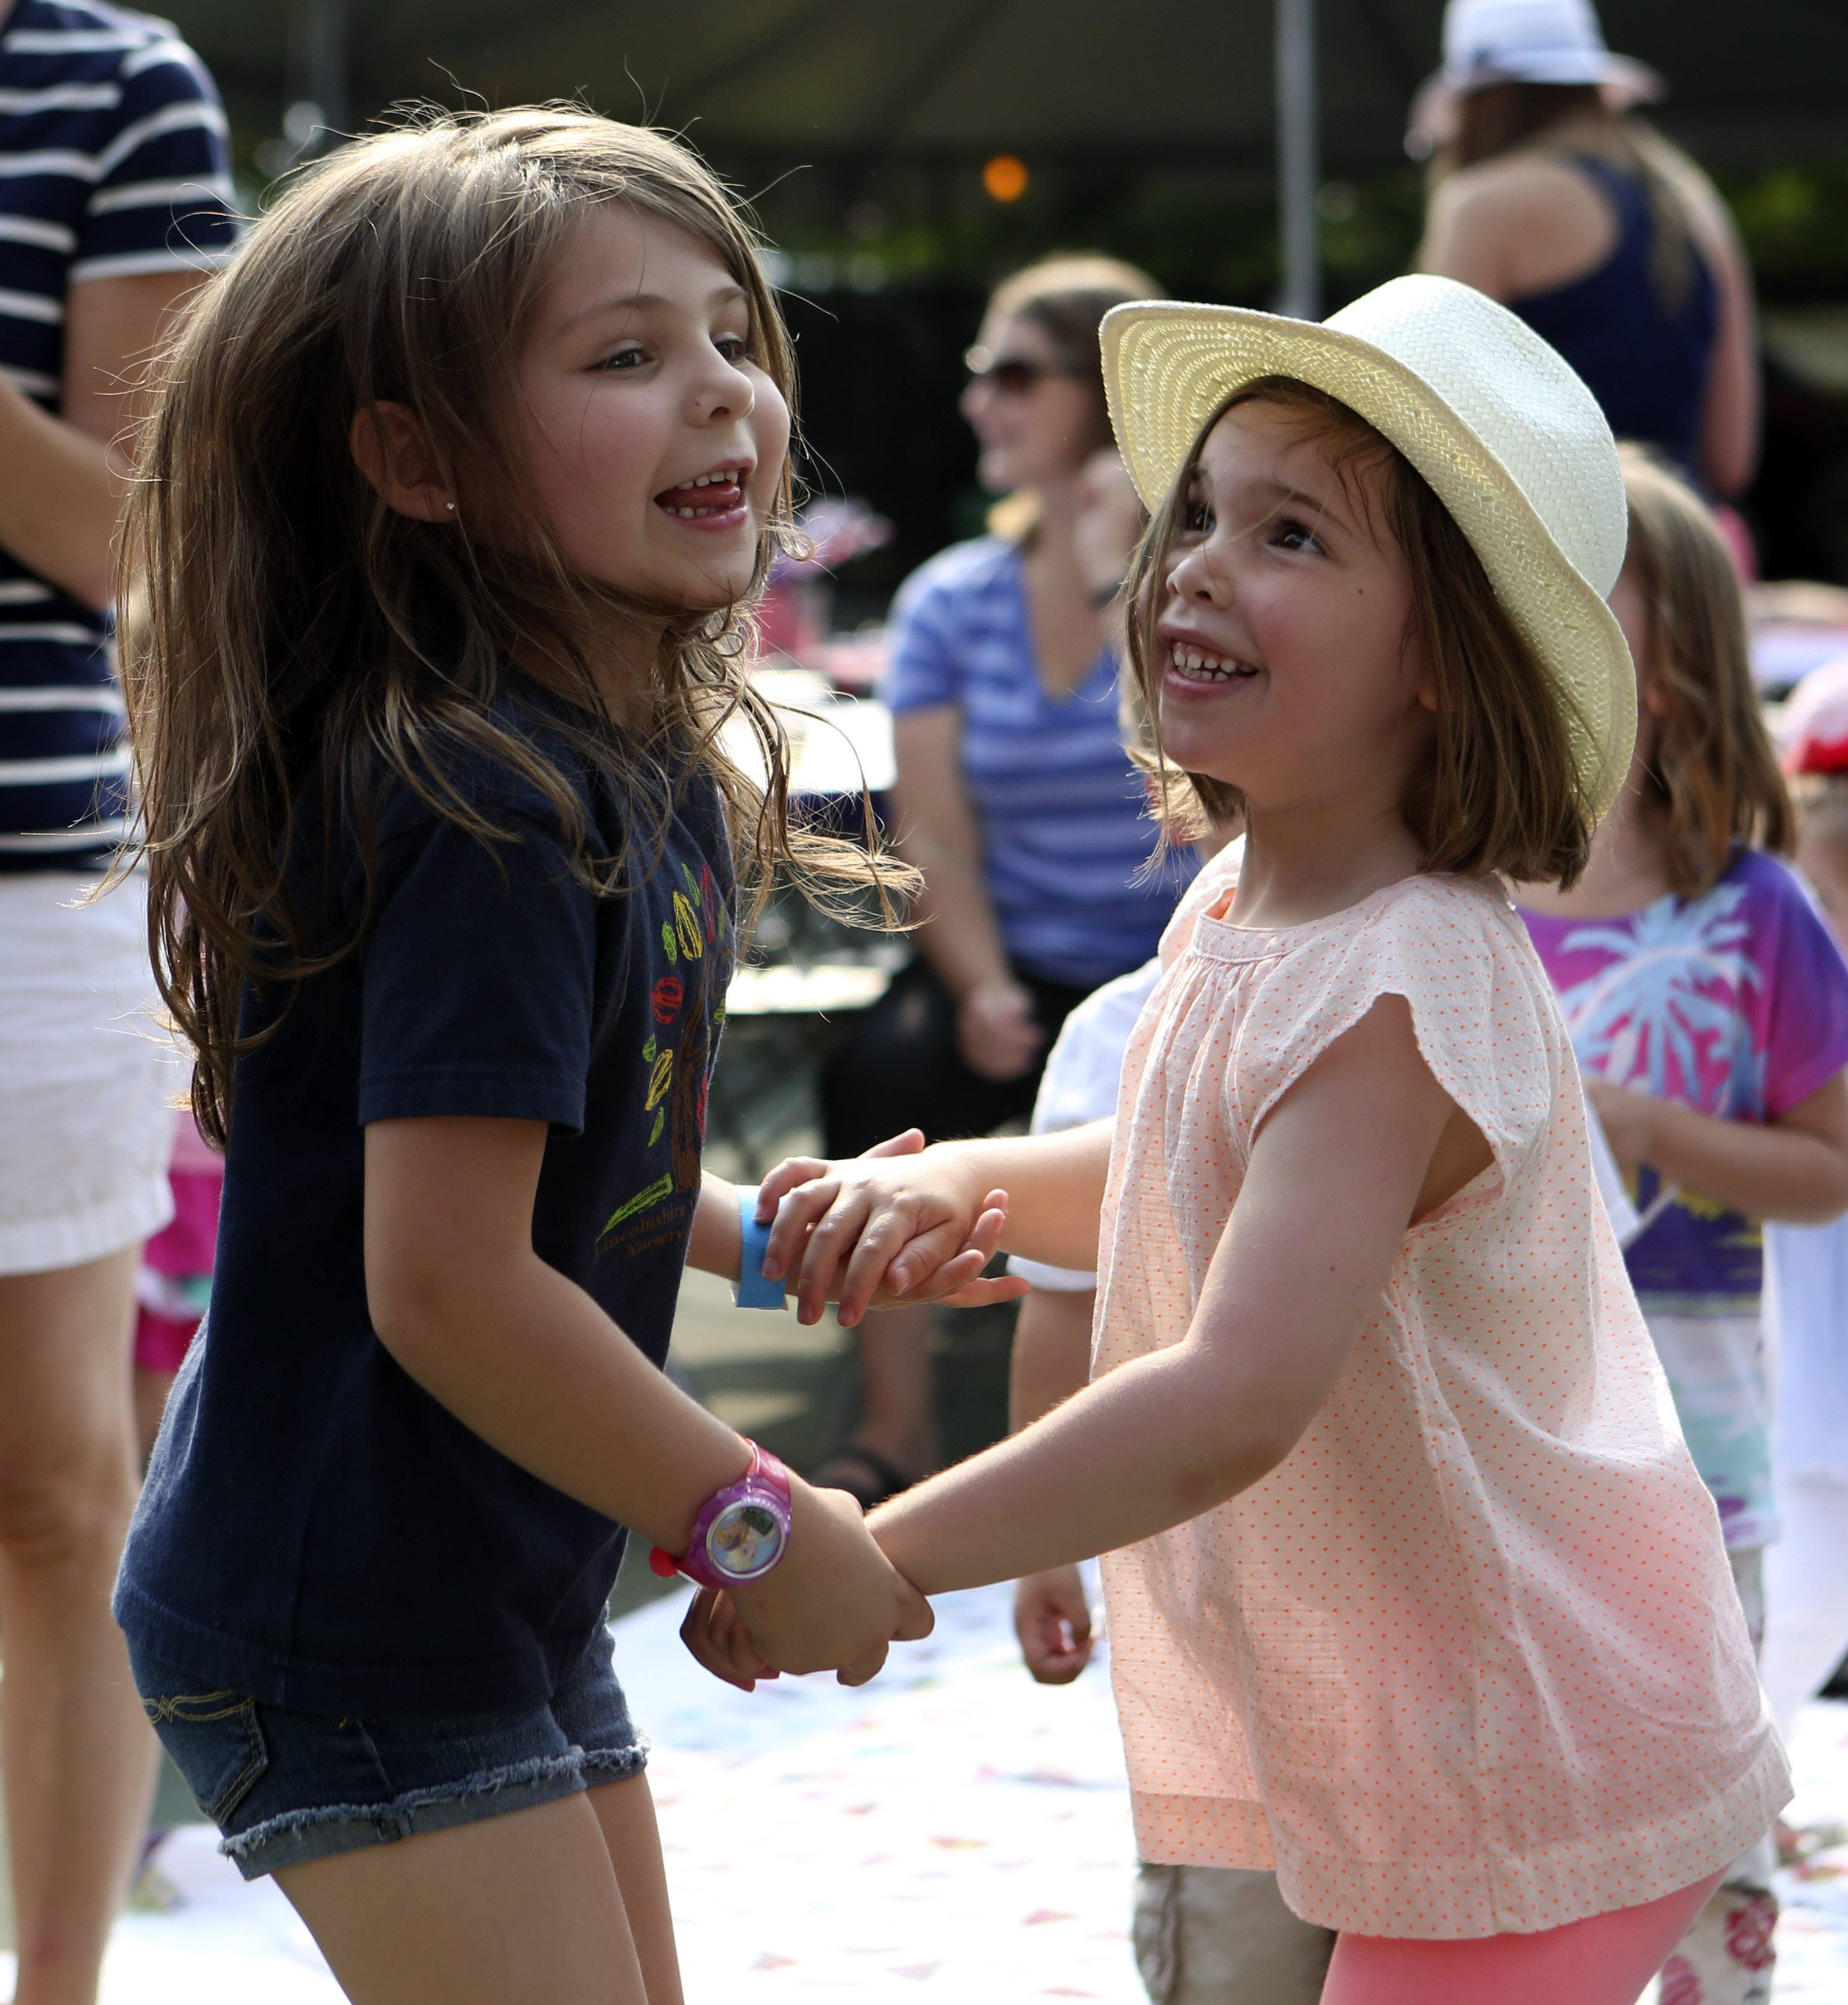 Isabella Bacci, 5, of Long Grove, and Olivia Santosuosso,5, of Lincolnshire, dance during the first day of Lincolnshire's Red, White & Boom celebration on Friday, July 3, at Spring Lake Park in Lincolnshire. The celebration featured a kid's concert, inflatable attractions and a classic car show.